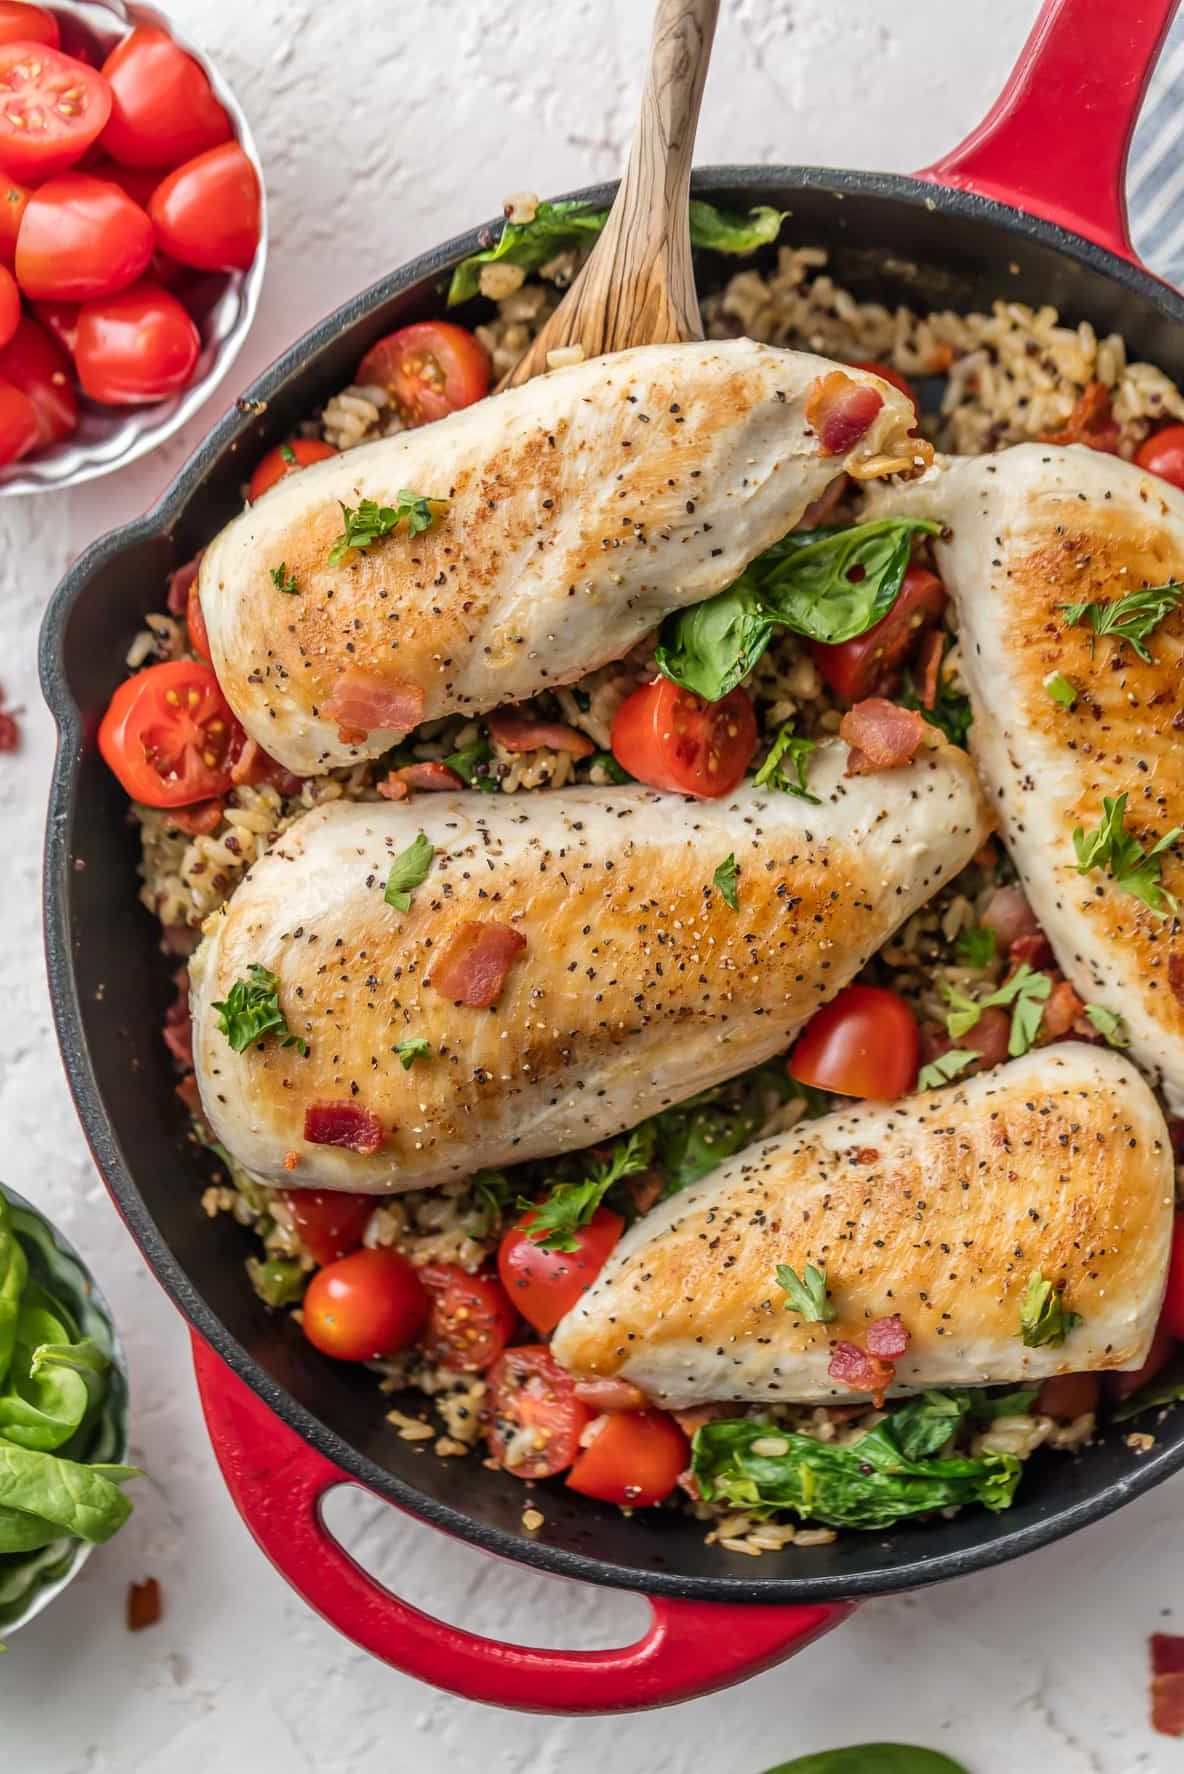 25 Easy Healthy Dinner Recipes - BLT Chicken and Rice Skillet